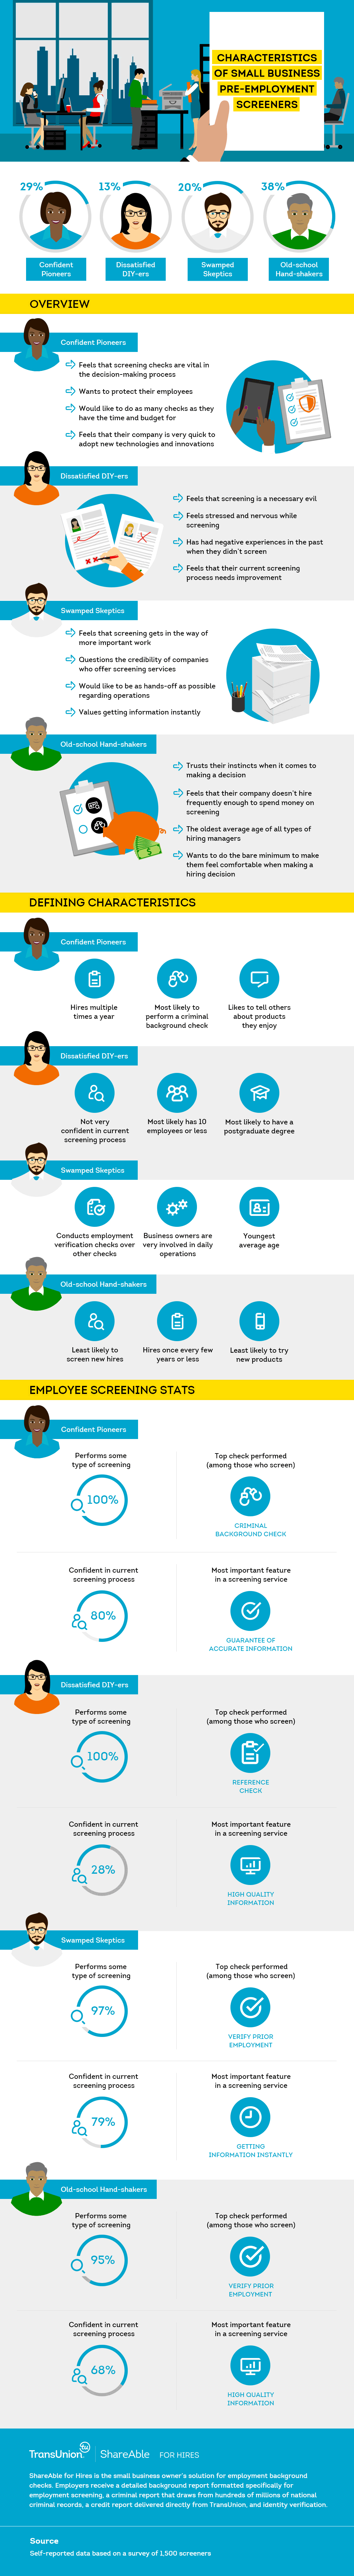 Small Business Pre-Employment Screener Characteristics  [INFOGRAPHIC]